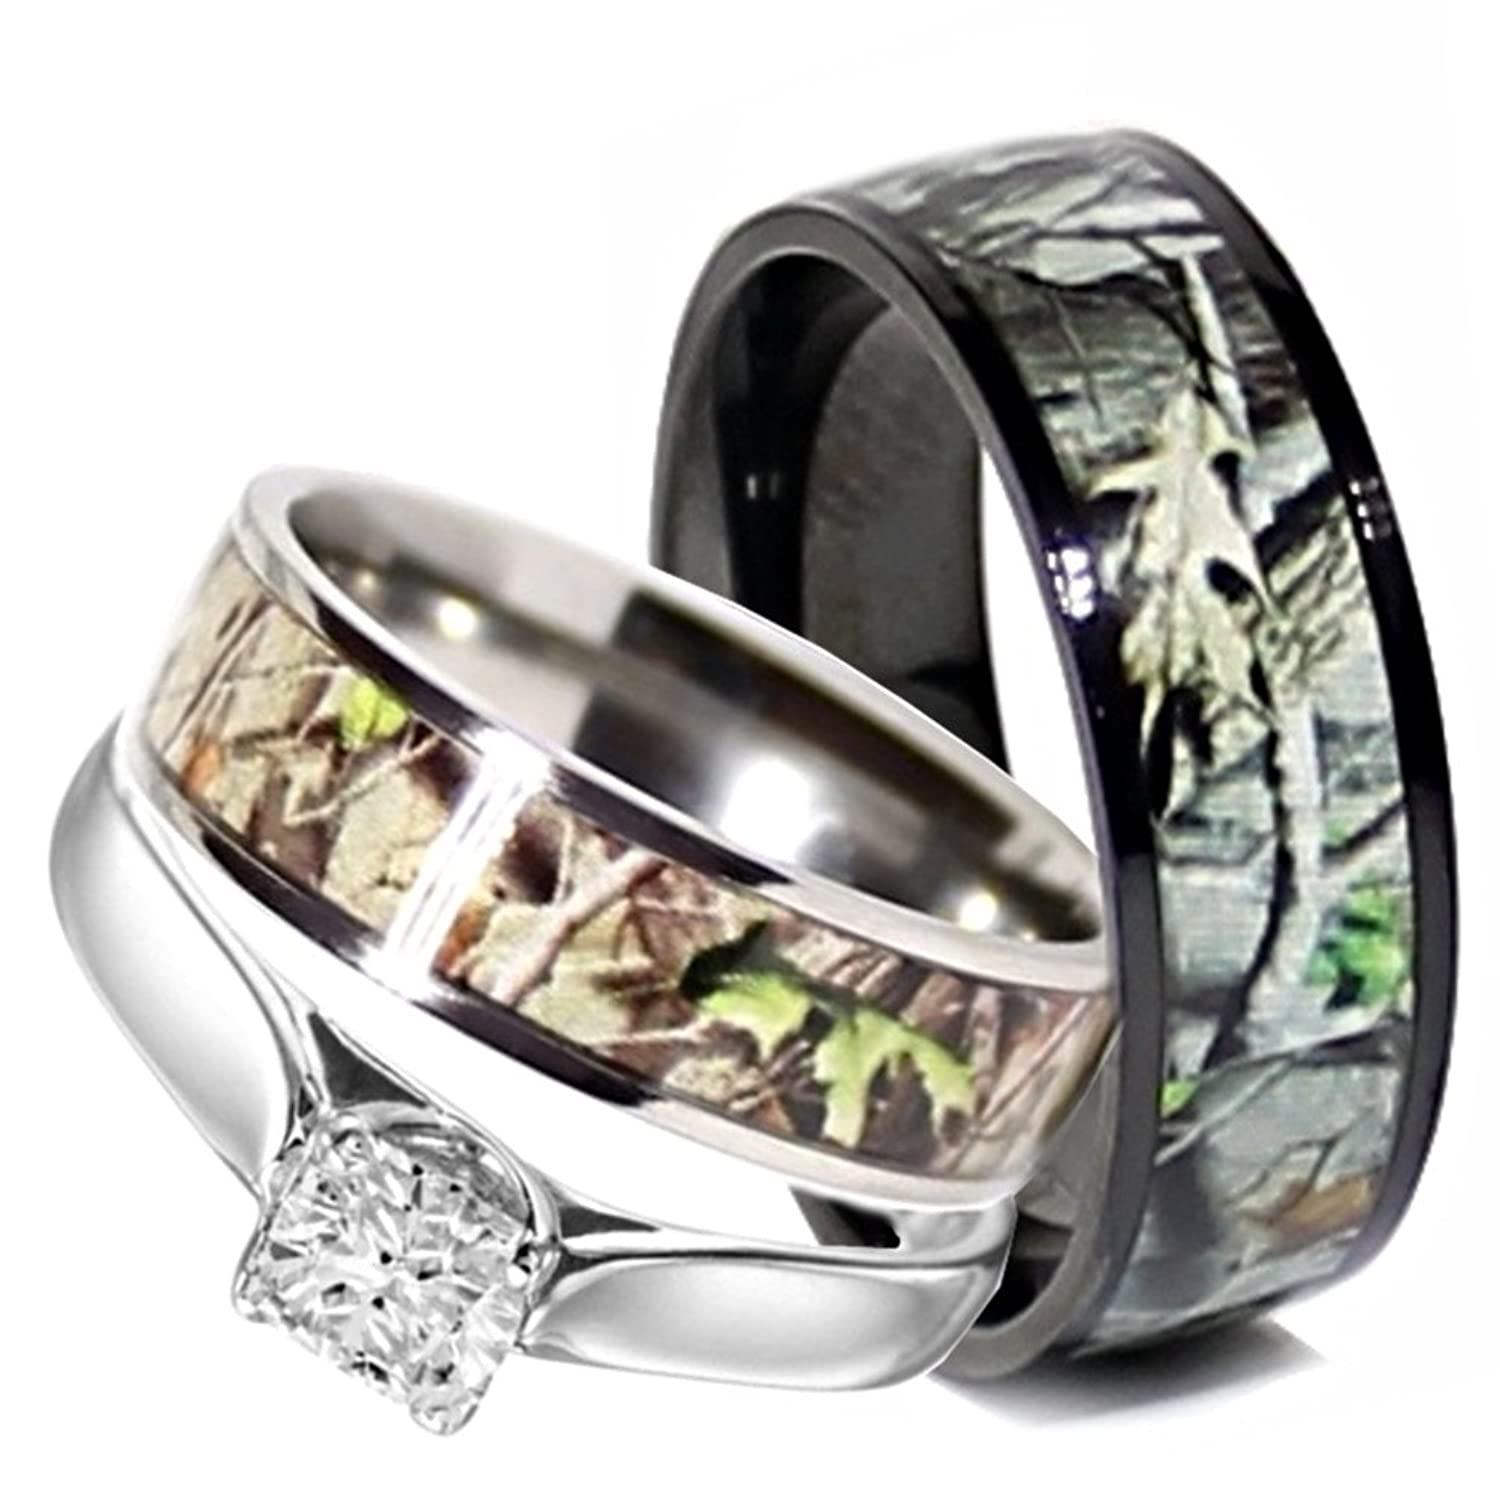 amazoncom camo wedding rings set his and hers 3 rings set sterling silver and titanium size men 10 women 10 jewelry - Camo Wedding Rings For Women